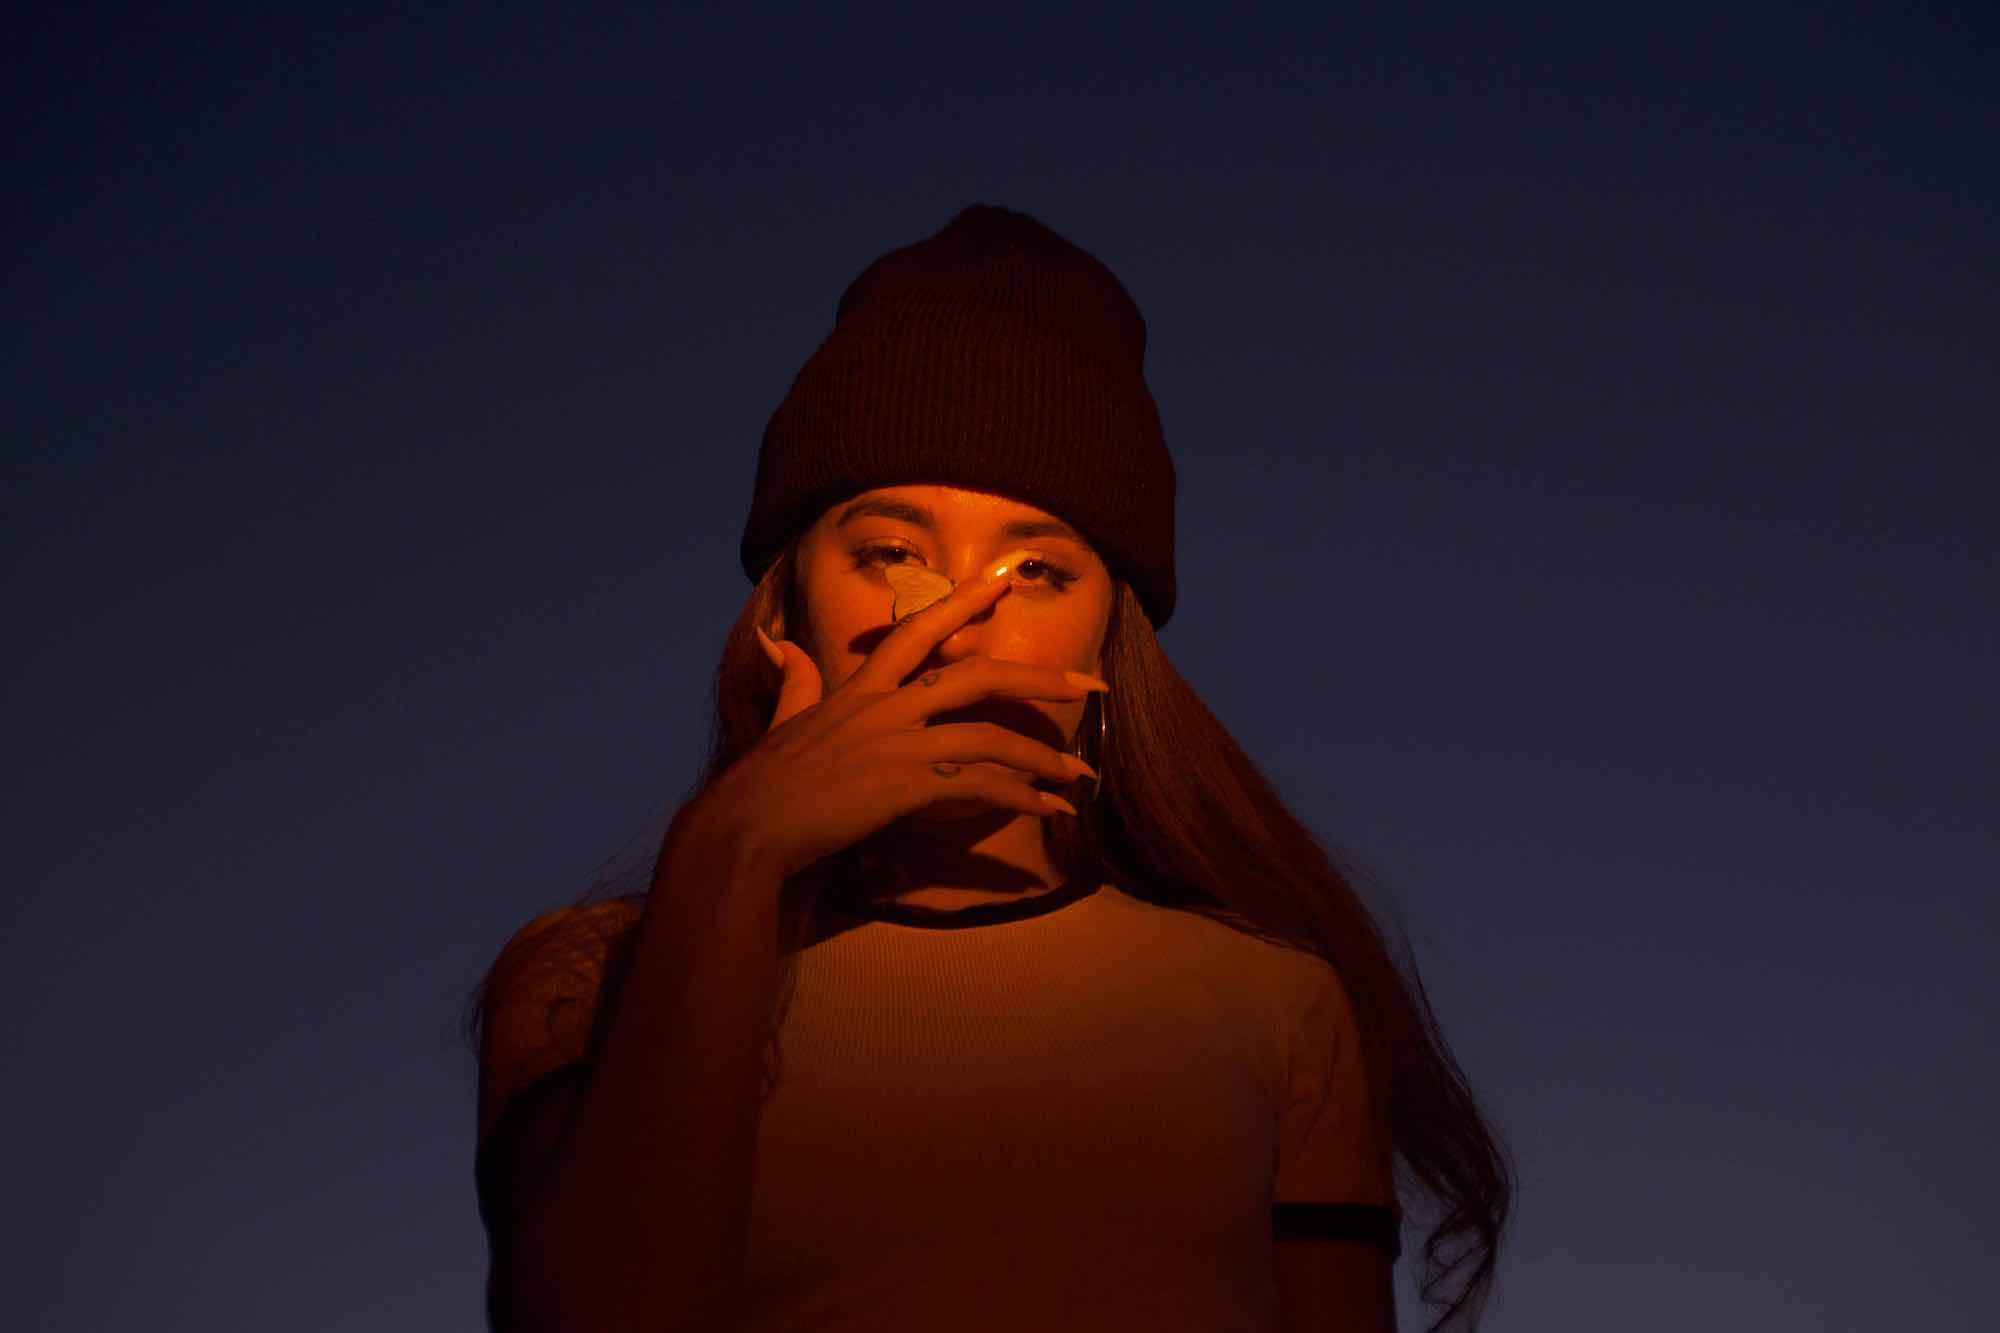 Alaina Castillo press image hat hand covering face